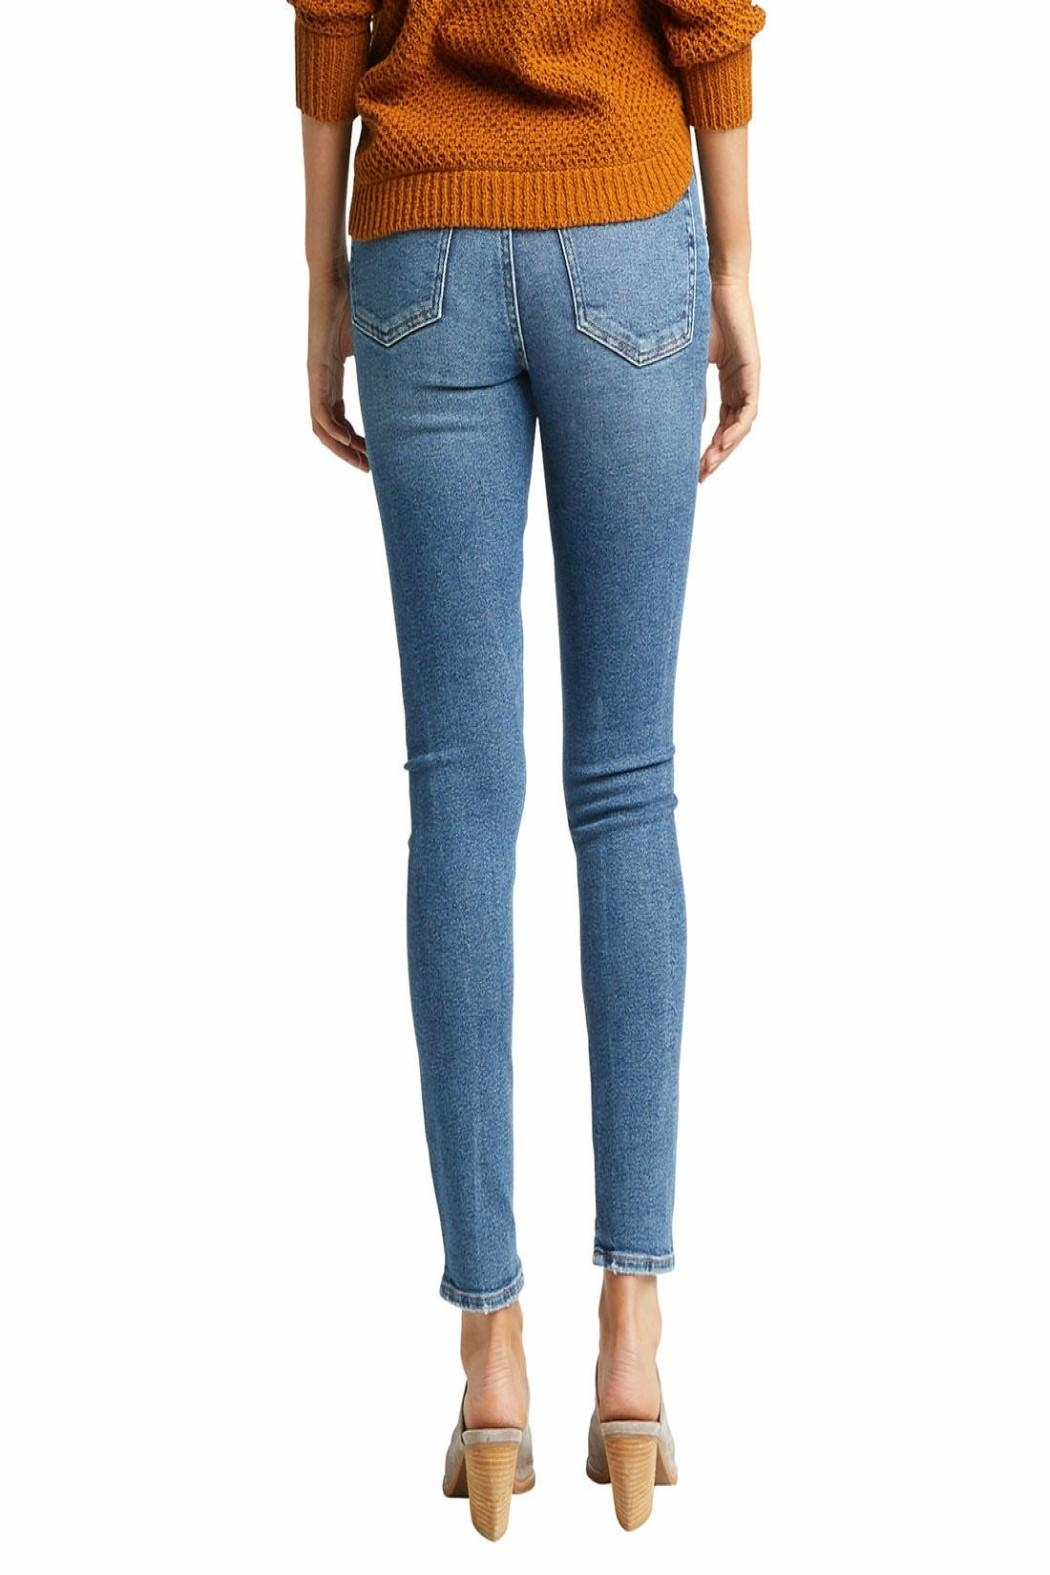 Silver Jeans Co. Most Wanted Skinny - Front Full Image